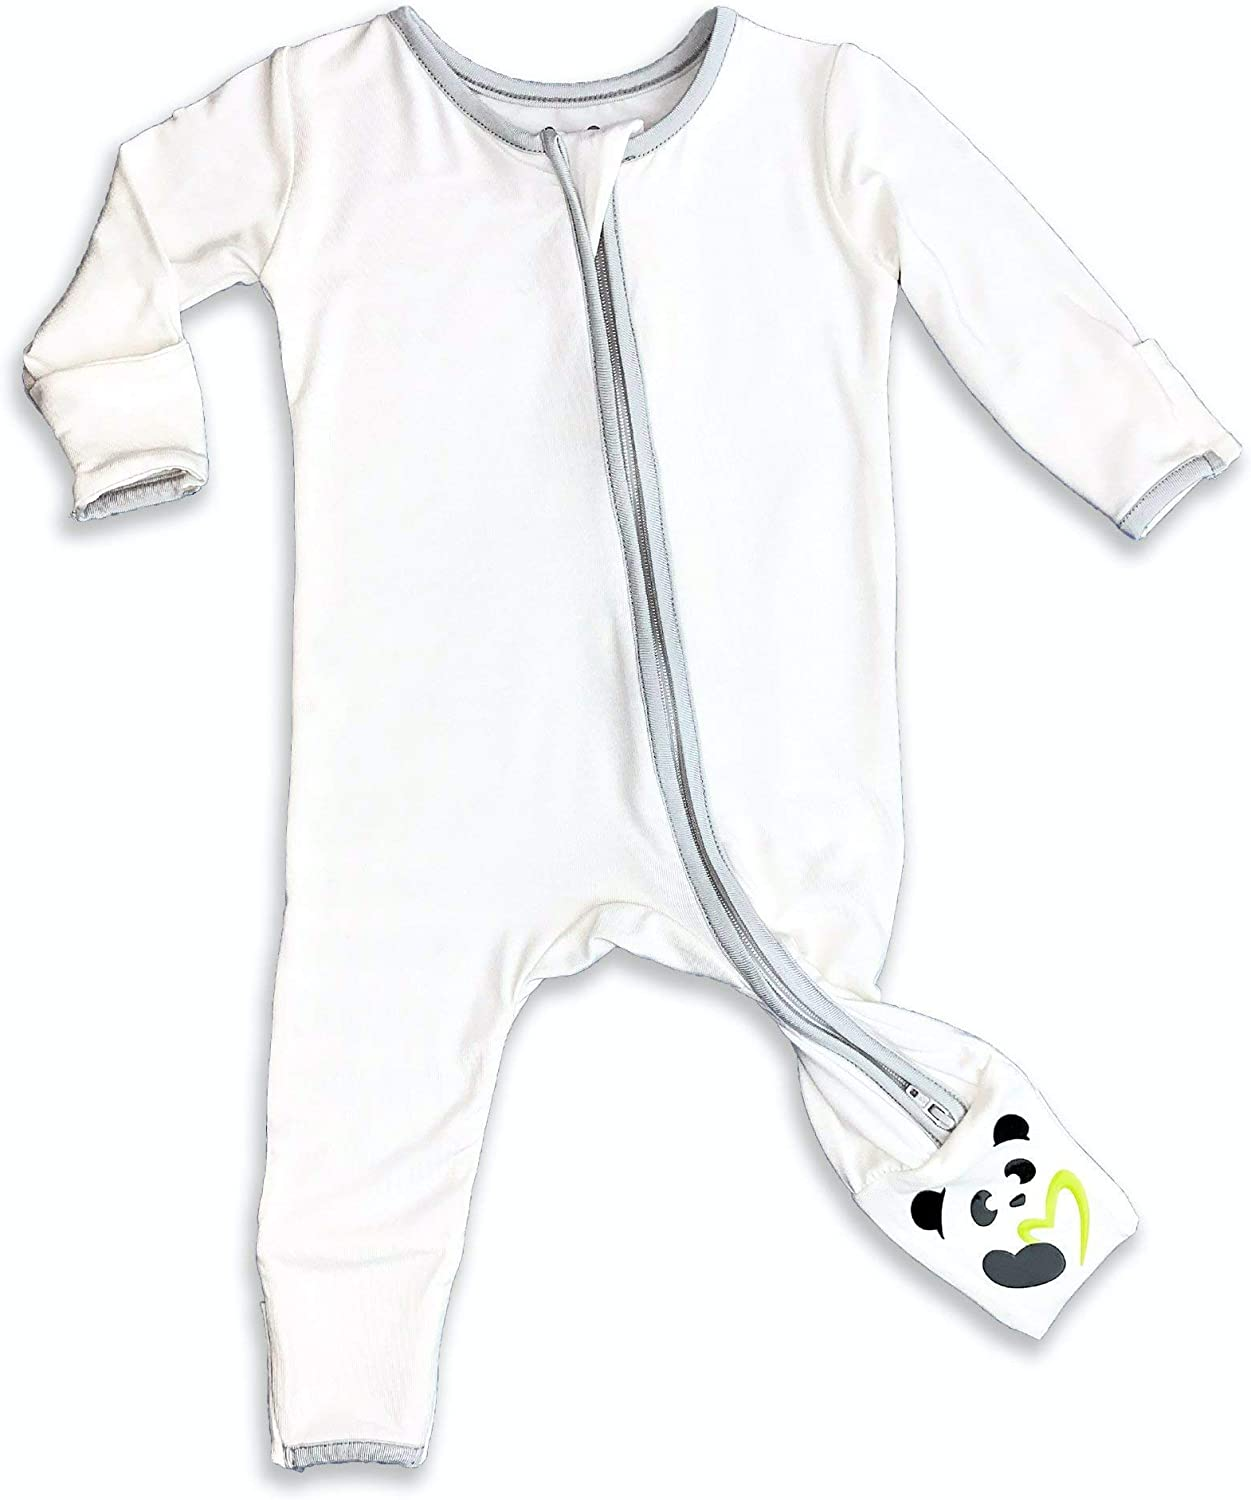 Dragon Bamboo Convertible Footie Soft Baby Pajama 2-Way Zipper Non-Slip Footed Romper PJ